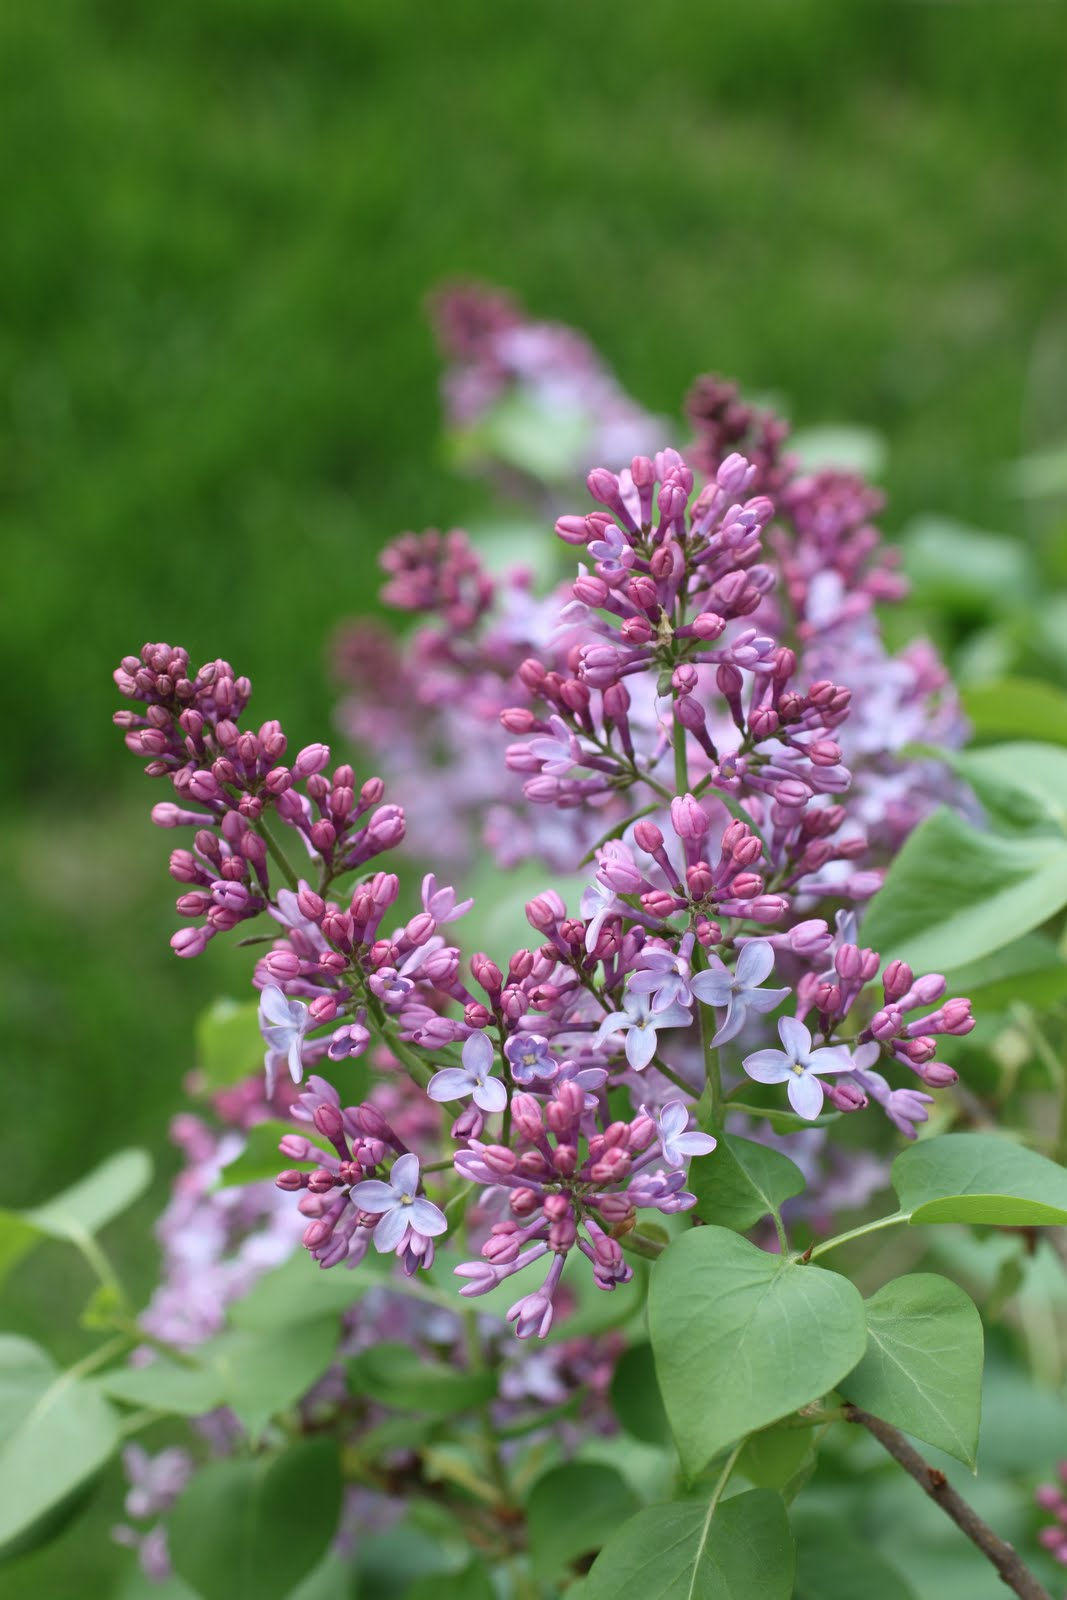 Flower vase pronunciation - It Was Only Later When Lying In Bed Revisiting This Vexatious Subject That I Determined That I Naturally Pronounced Lilac Similarly To The Way